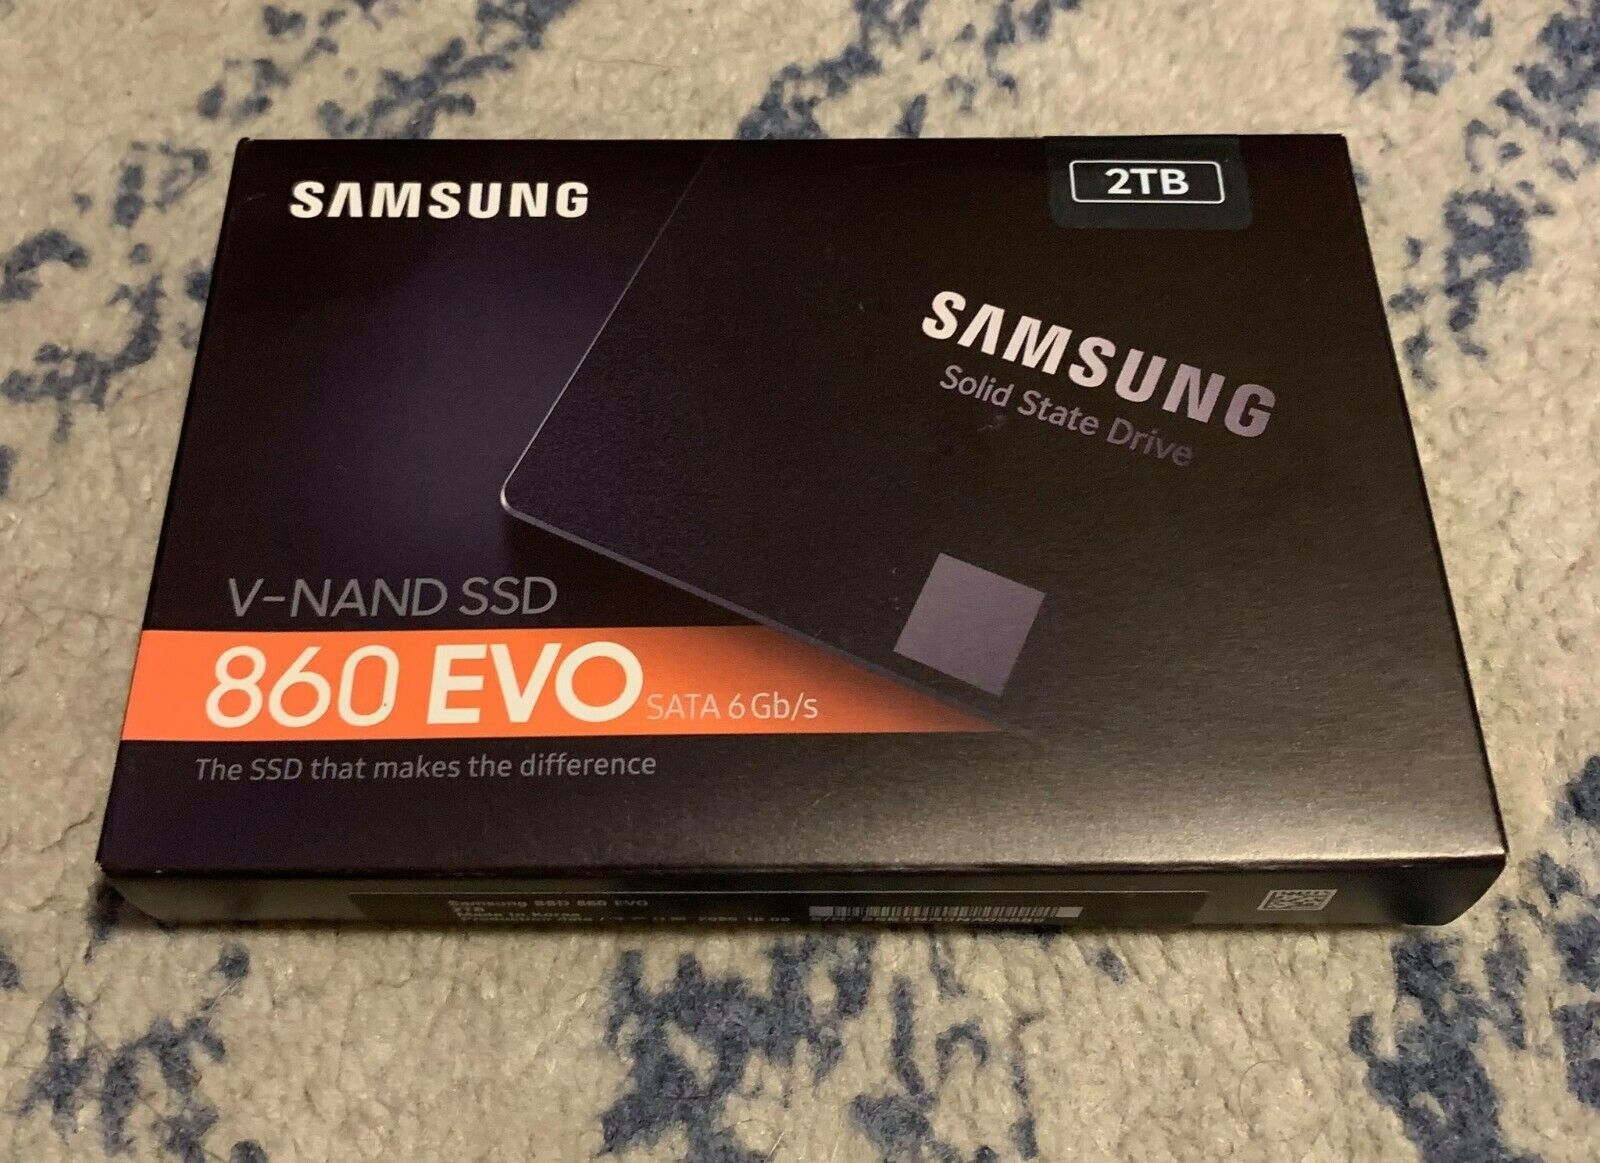 Samsung 860 EVO 2TB Solid State Drive SATA III Internal SSD - FACTORY SEALED!. Buy it now for 208.00